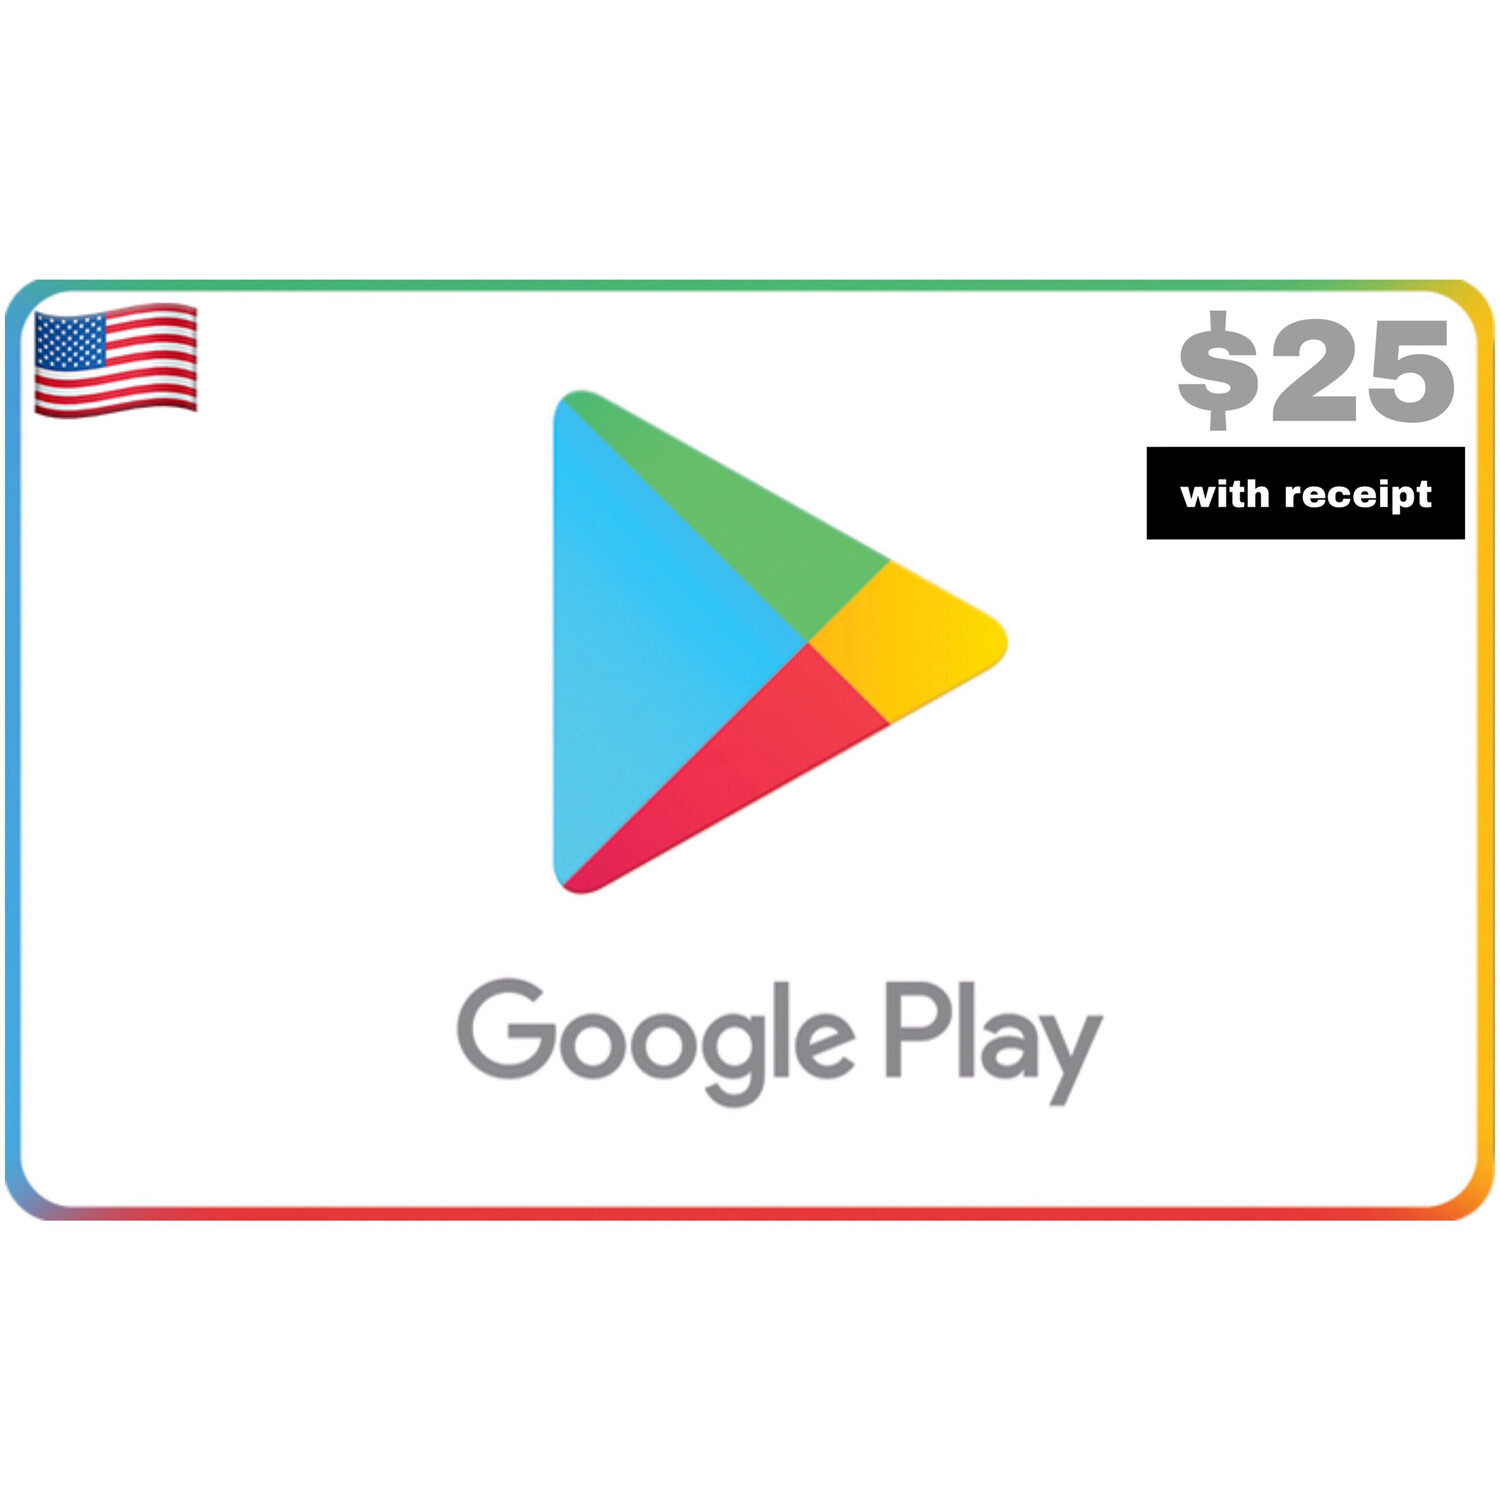 Google Play Gift Card US $25 with receipt